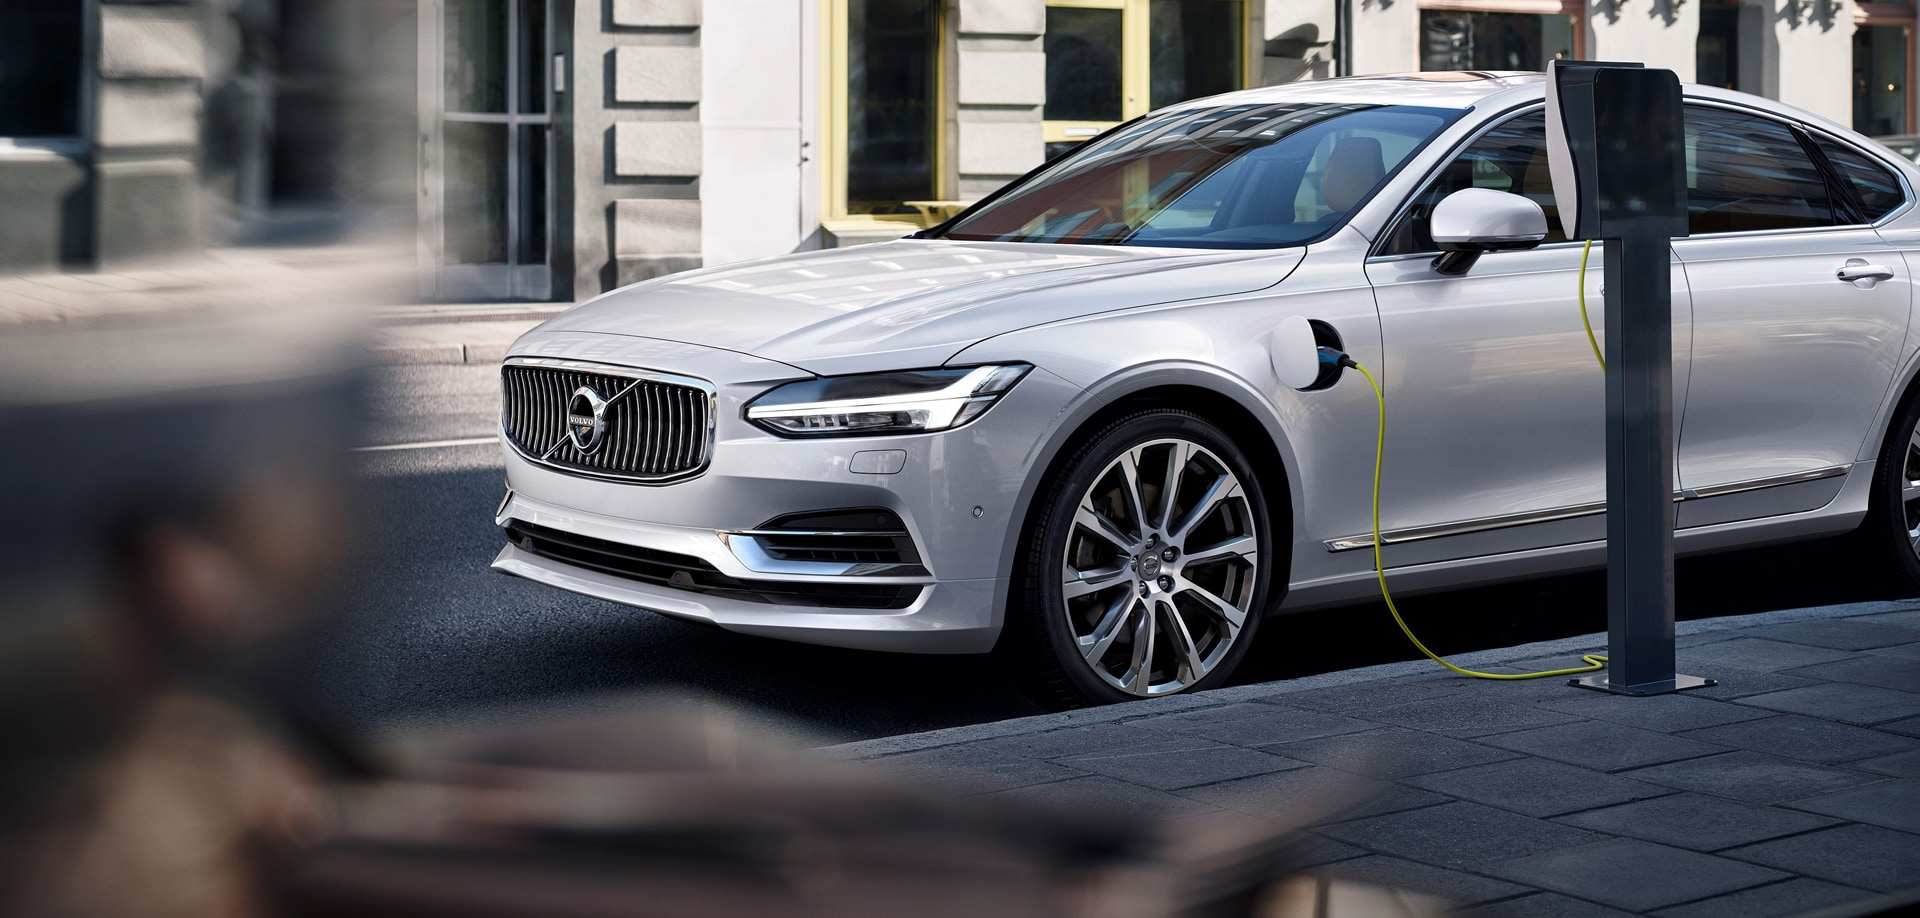 25 Concept of Volvo 2019 Announcement Pictures with Volvo 2019 Announcement